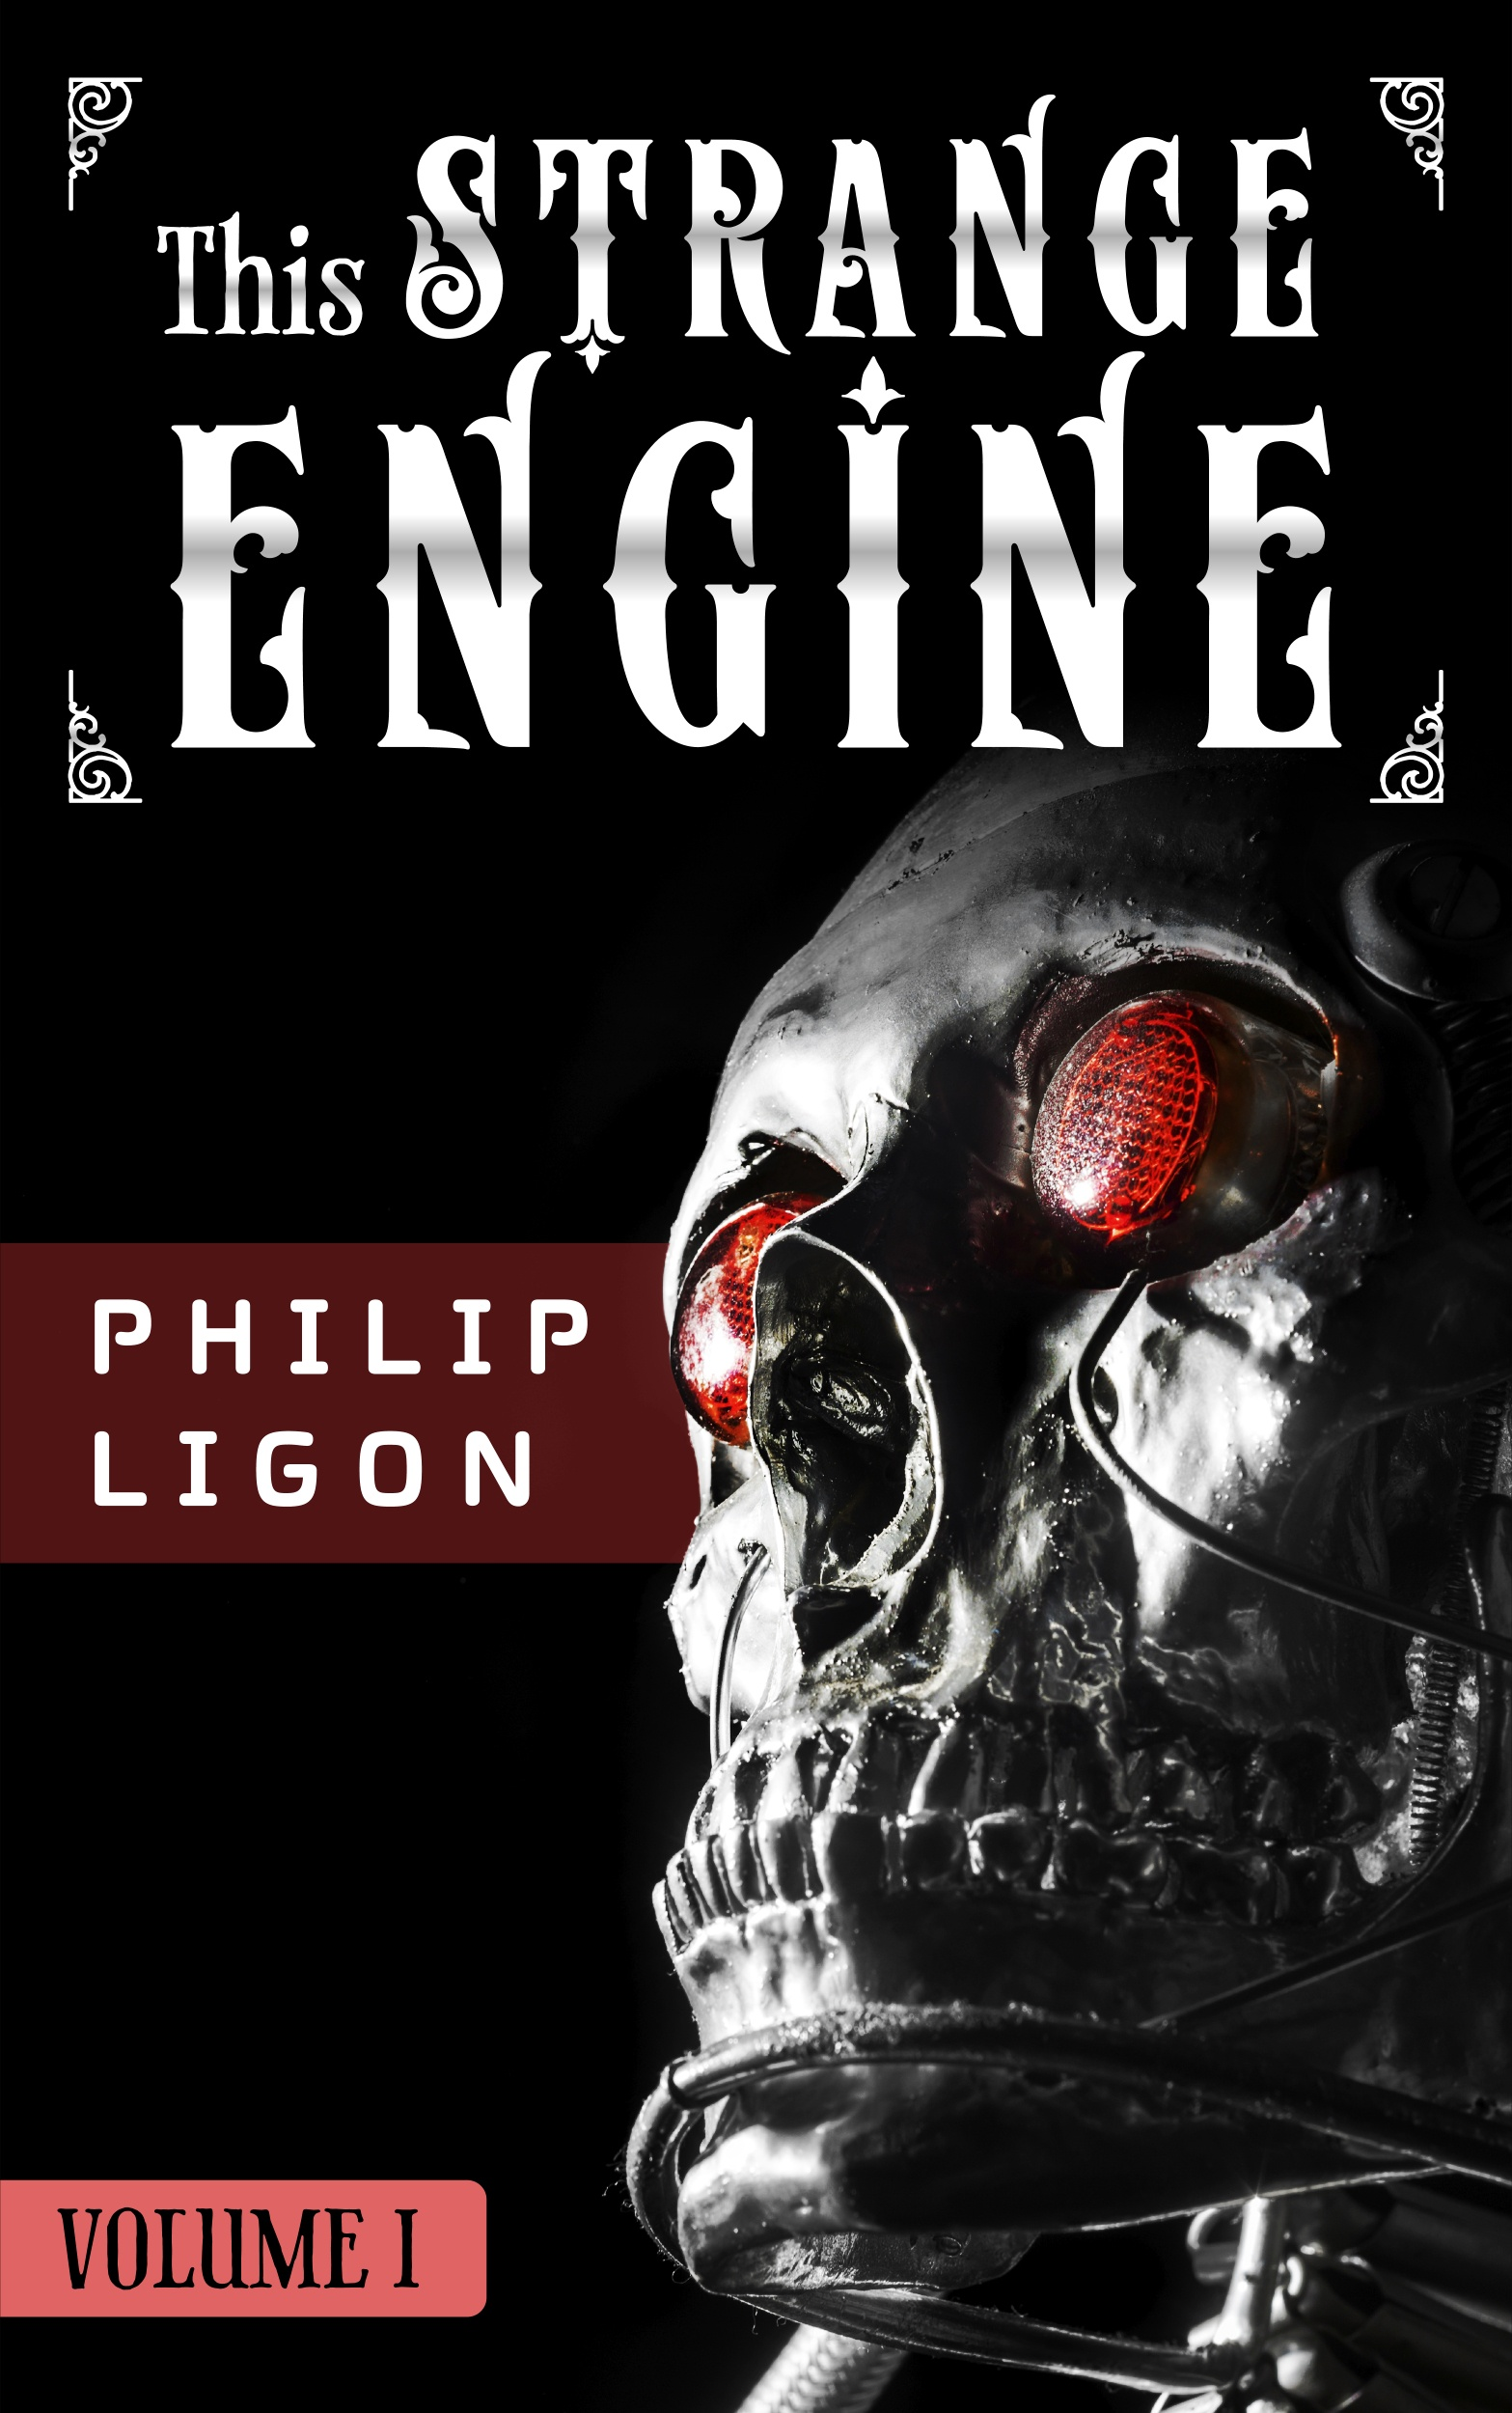 bec0f66e8c Today I m pleased to announce the addition of another upcoming author –  Philip Ligon – to the ever expanding Silver Empire stable.